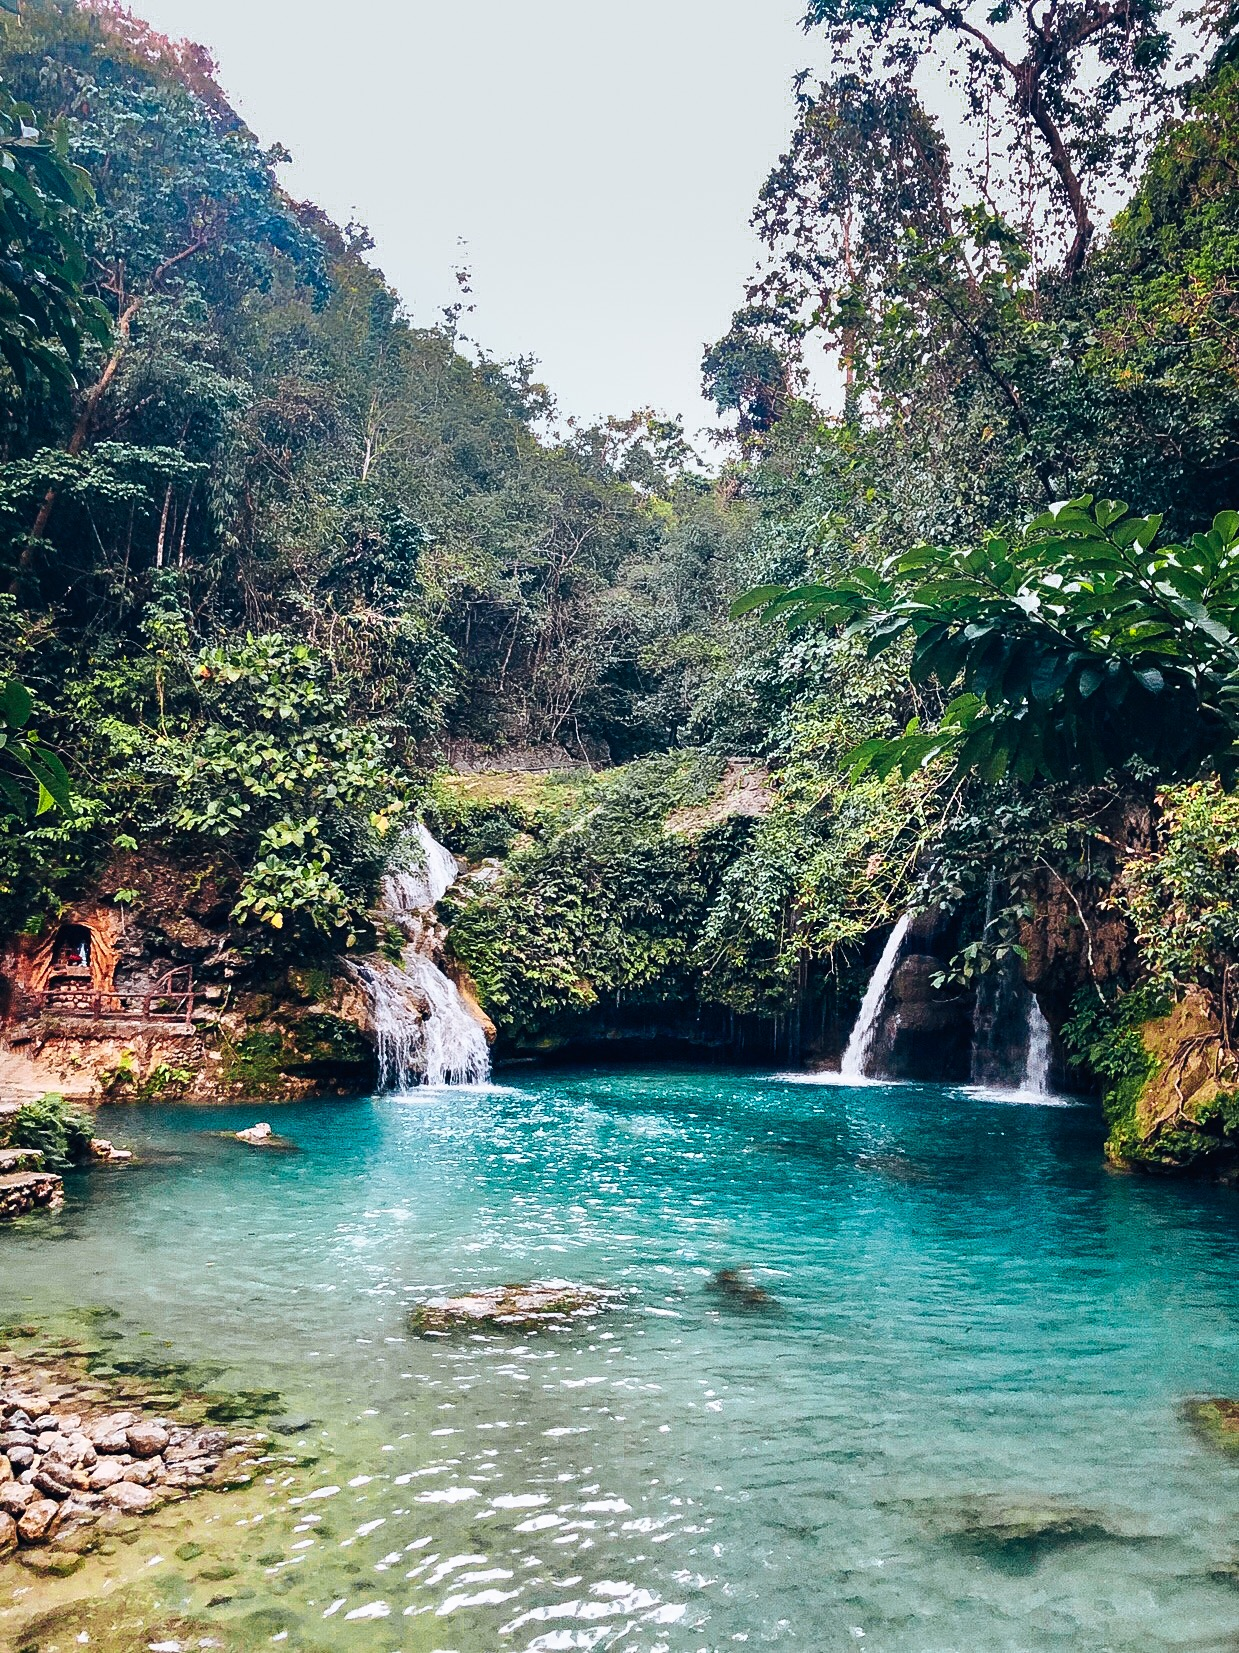 Canyoneering in the most crystal blue springs of Kawasan Falls, PH